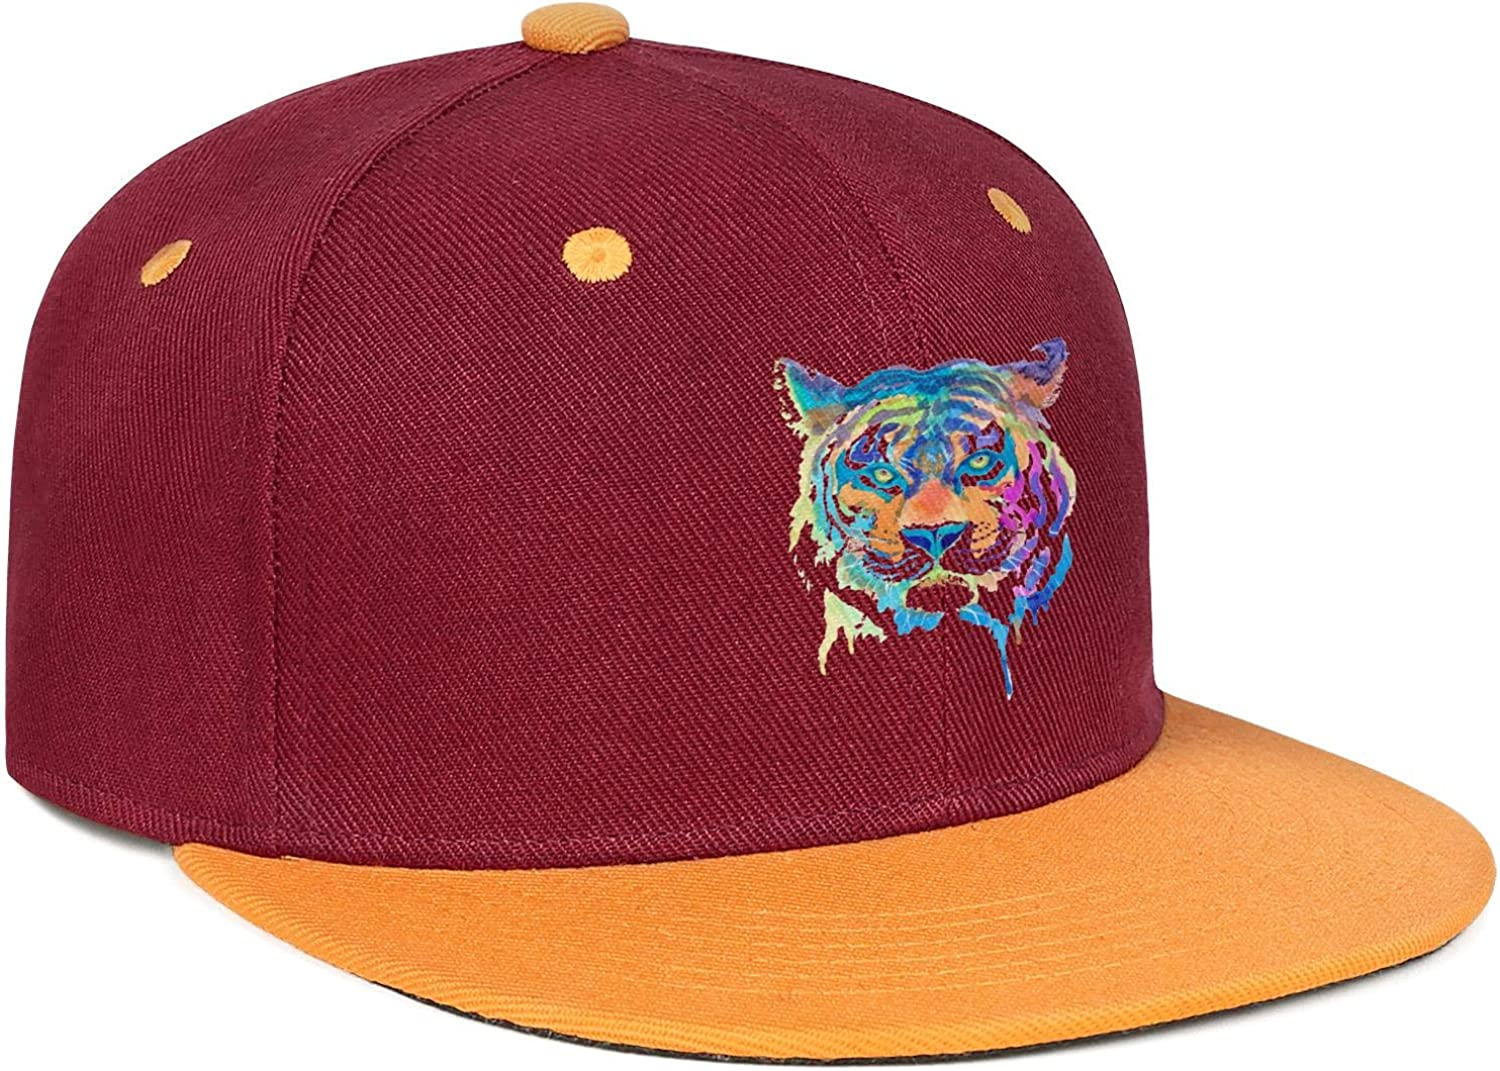 Colorful Tiger Art Gifts Rainbow Mens Womens Flat Hats Adjustable Snapback Flat Bill Caps